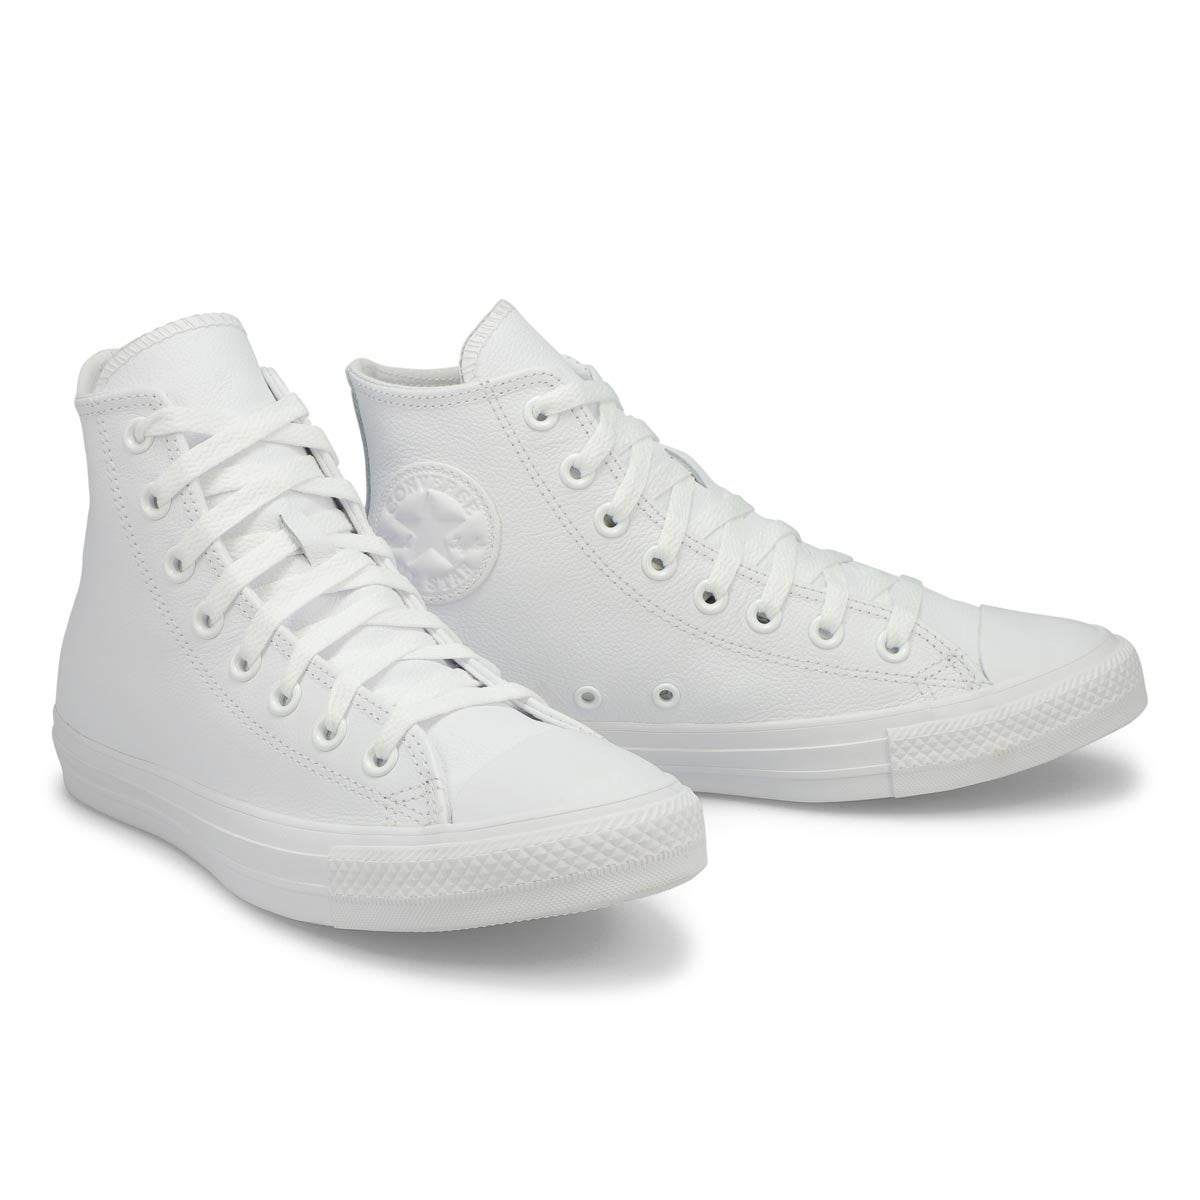 Lds CTAS Leather Hi wht mono snkr